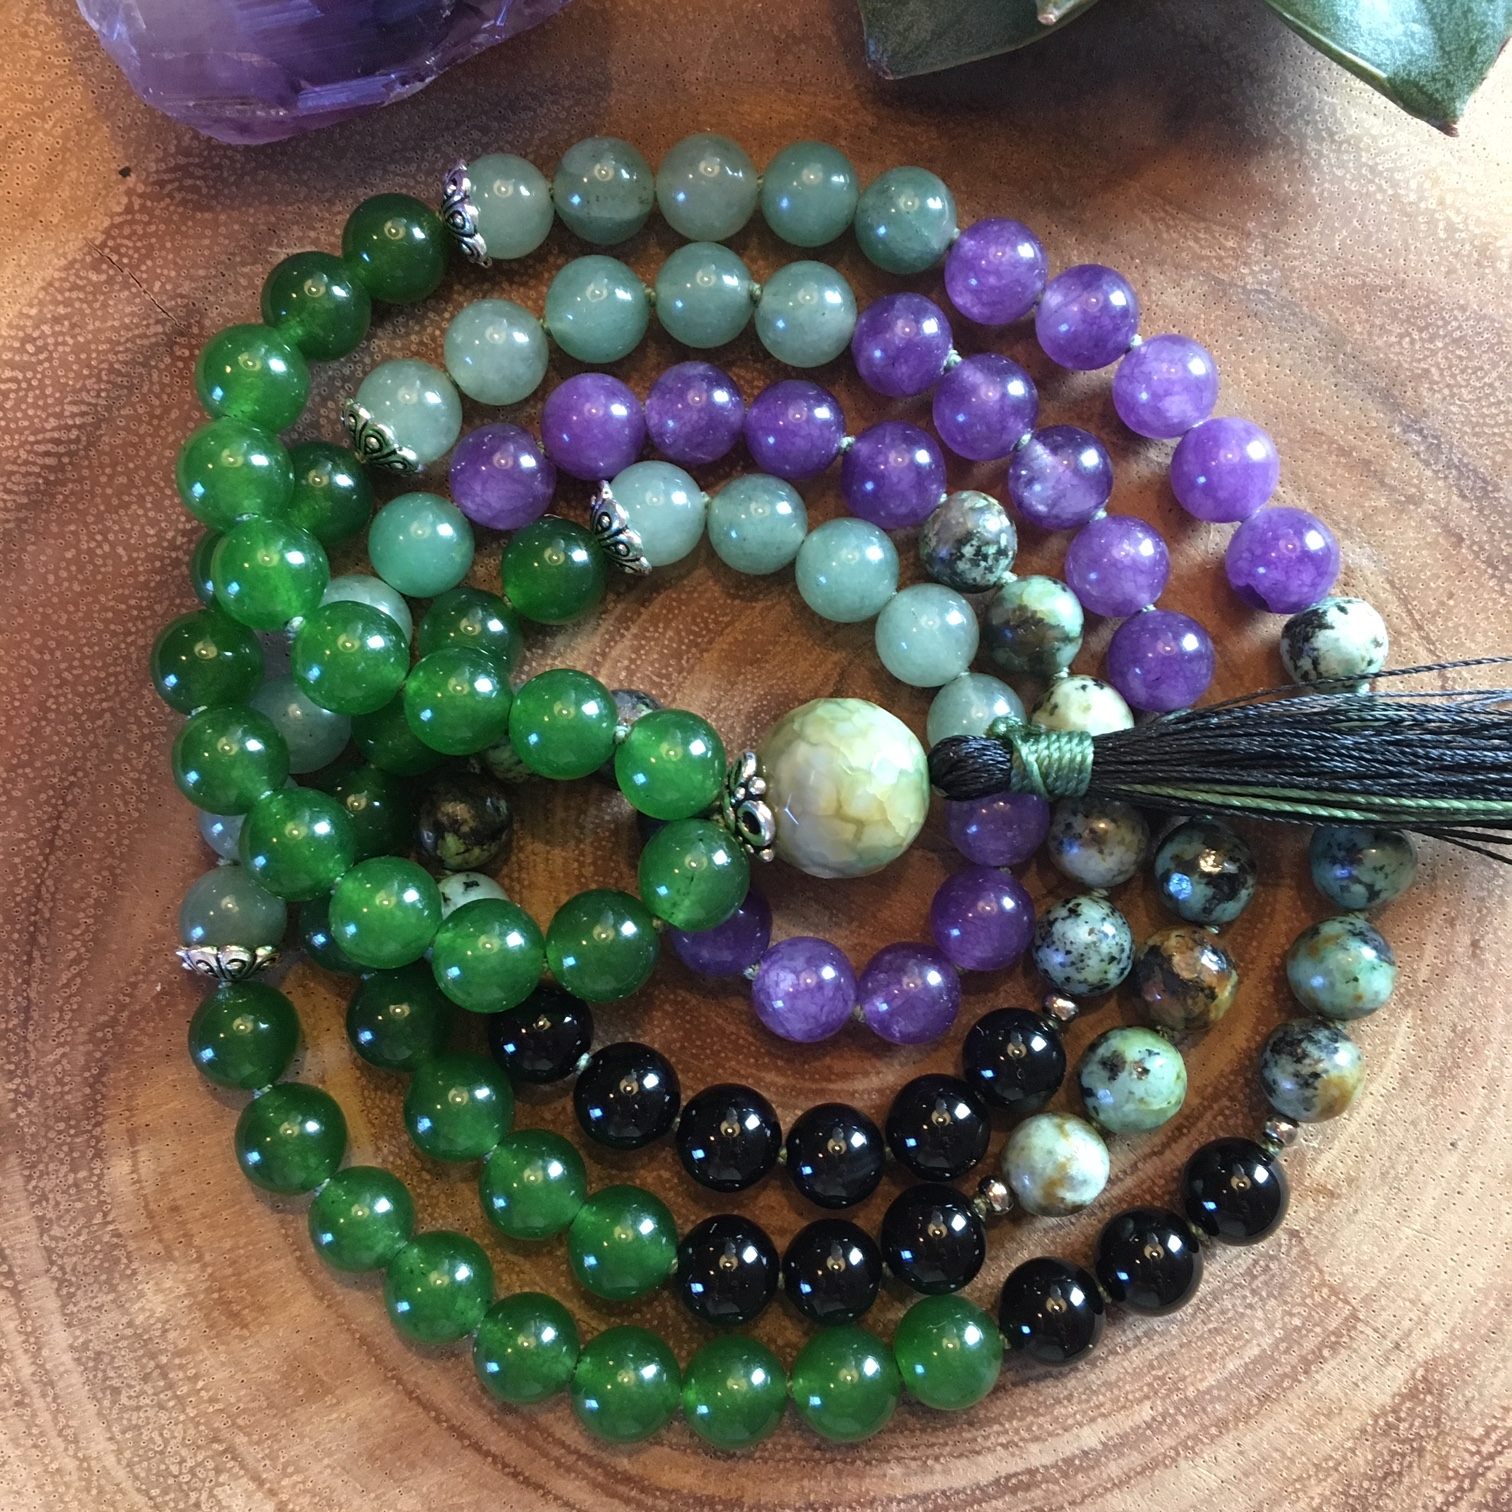 Wholeness and Wellness Mala  (8mm) made with Taiwanese Jade, Green Aventurine, African Turquoise and Amethyst.